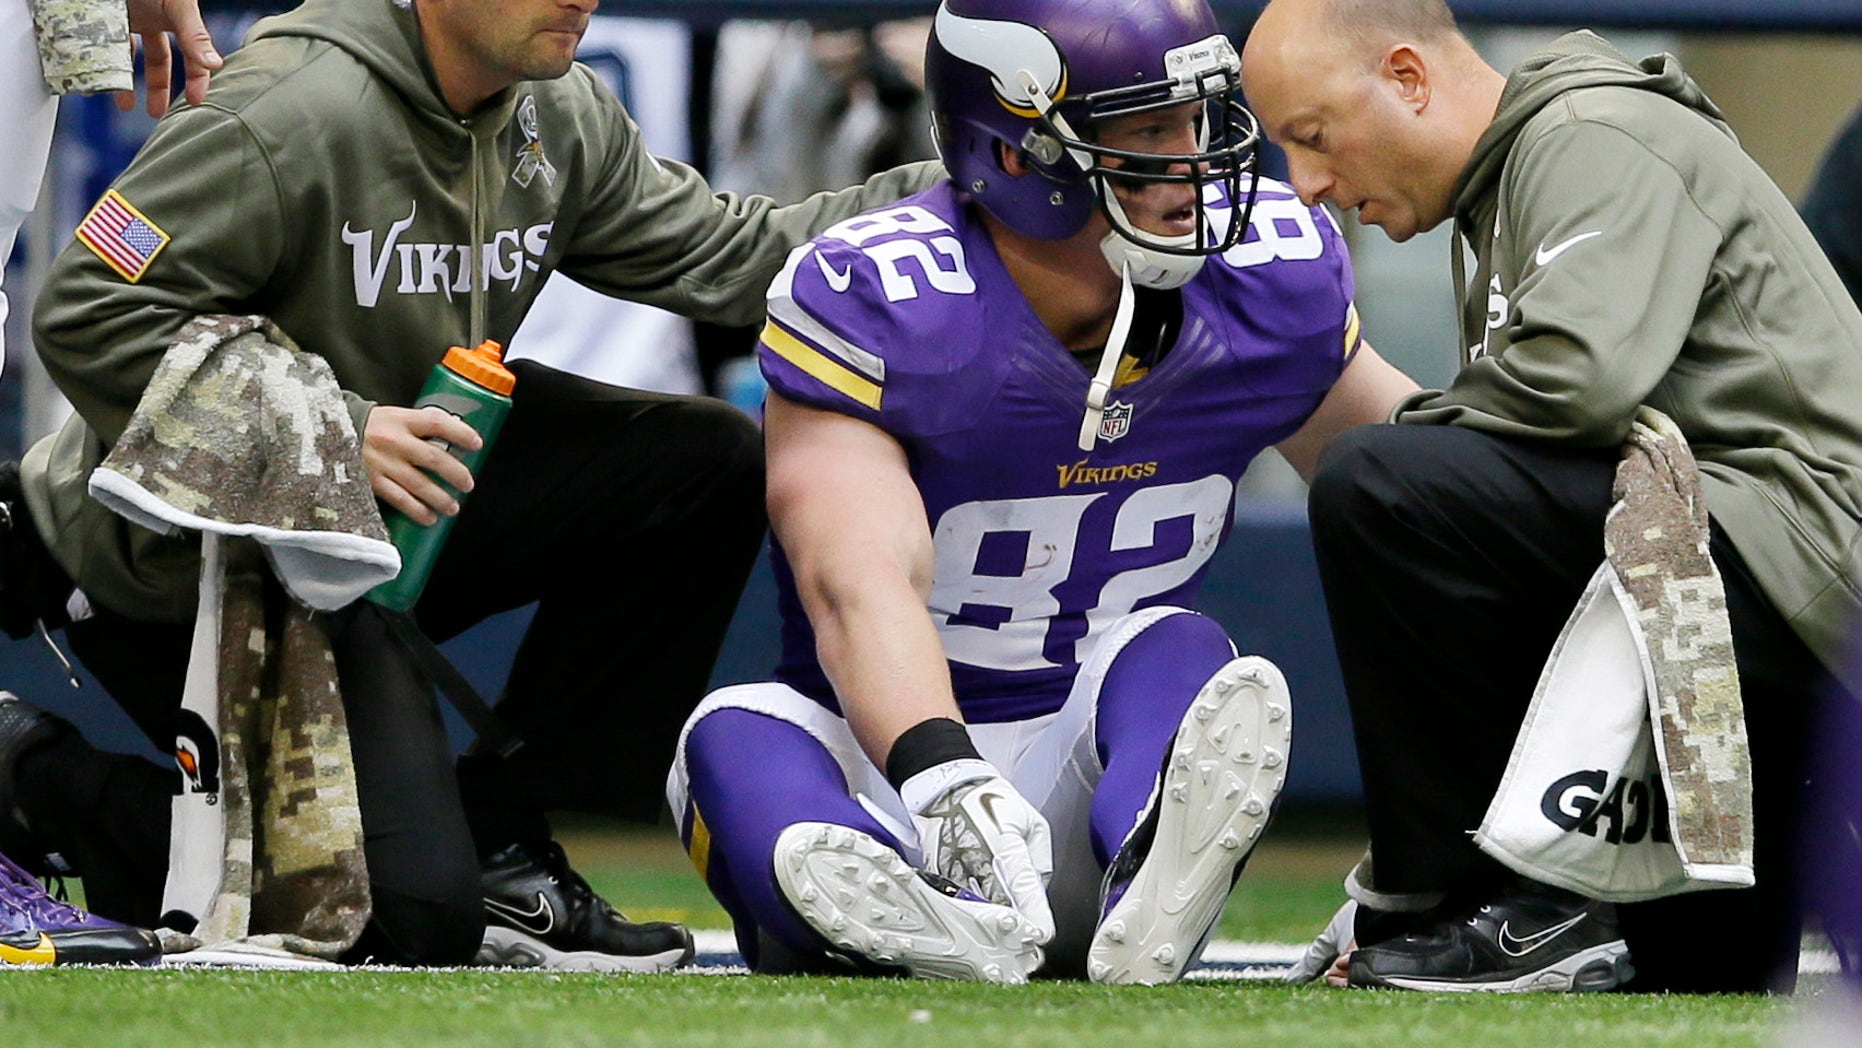 Minnesota Vikings' Kyle Rudolph (82) is attended to by staff after Rudolph scored on a pass play in the second half of an NFL football game against the Dallas Cowboys, Sunday, Nov. 3, 2013, in Arlington, Texas. (AP Photo/Tim Sharp)